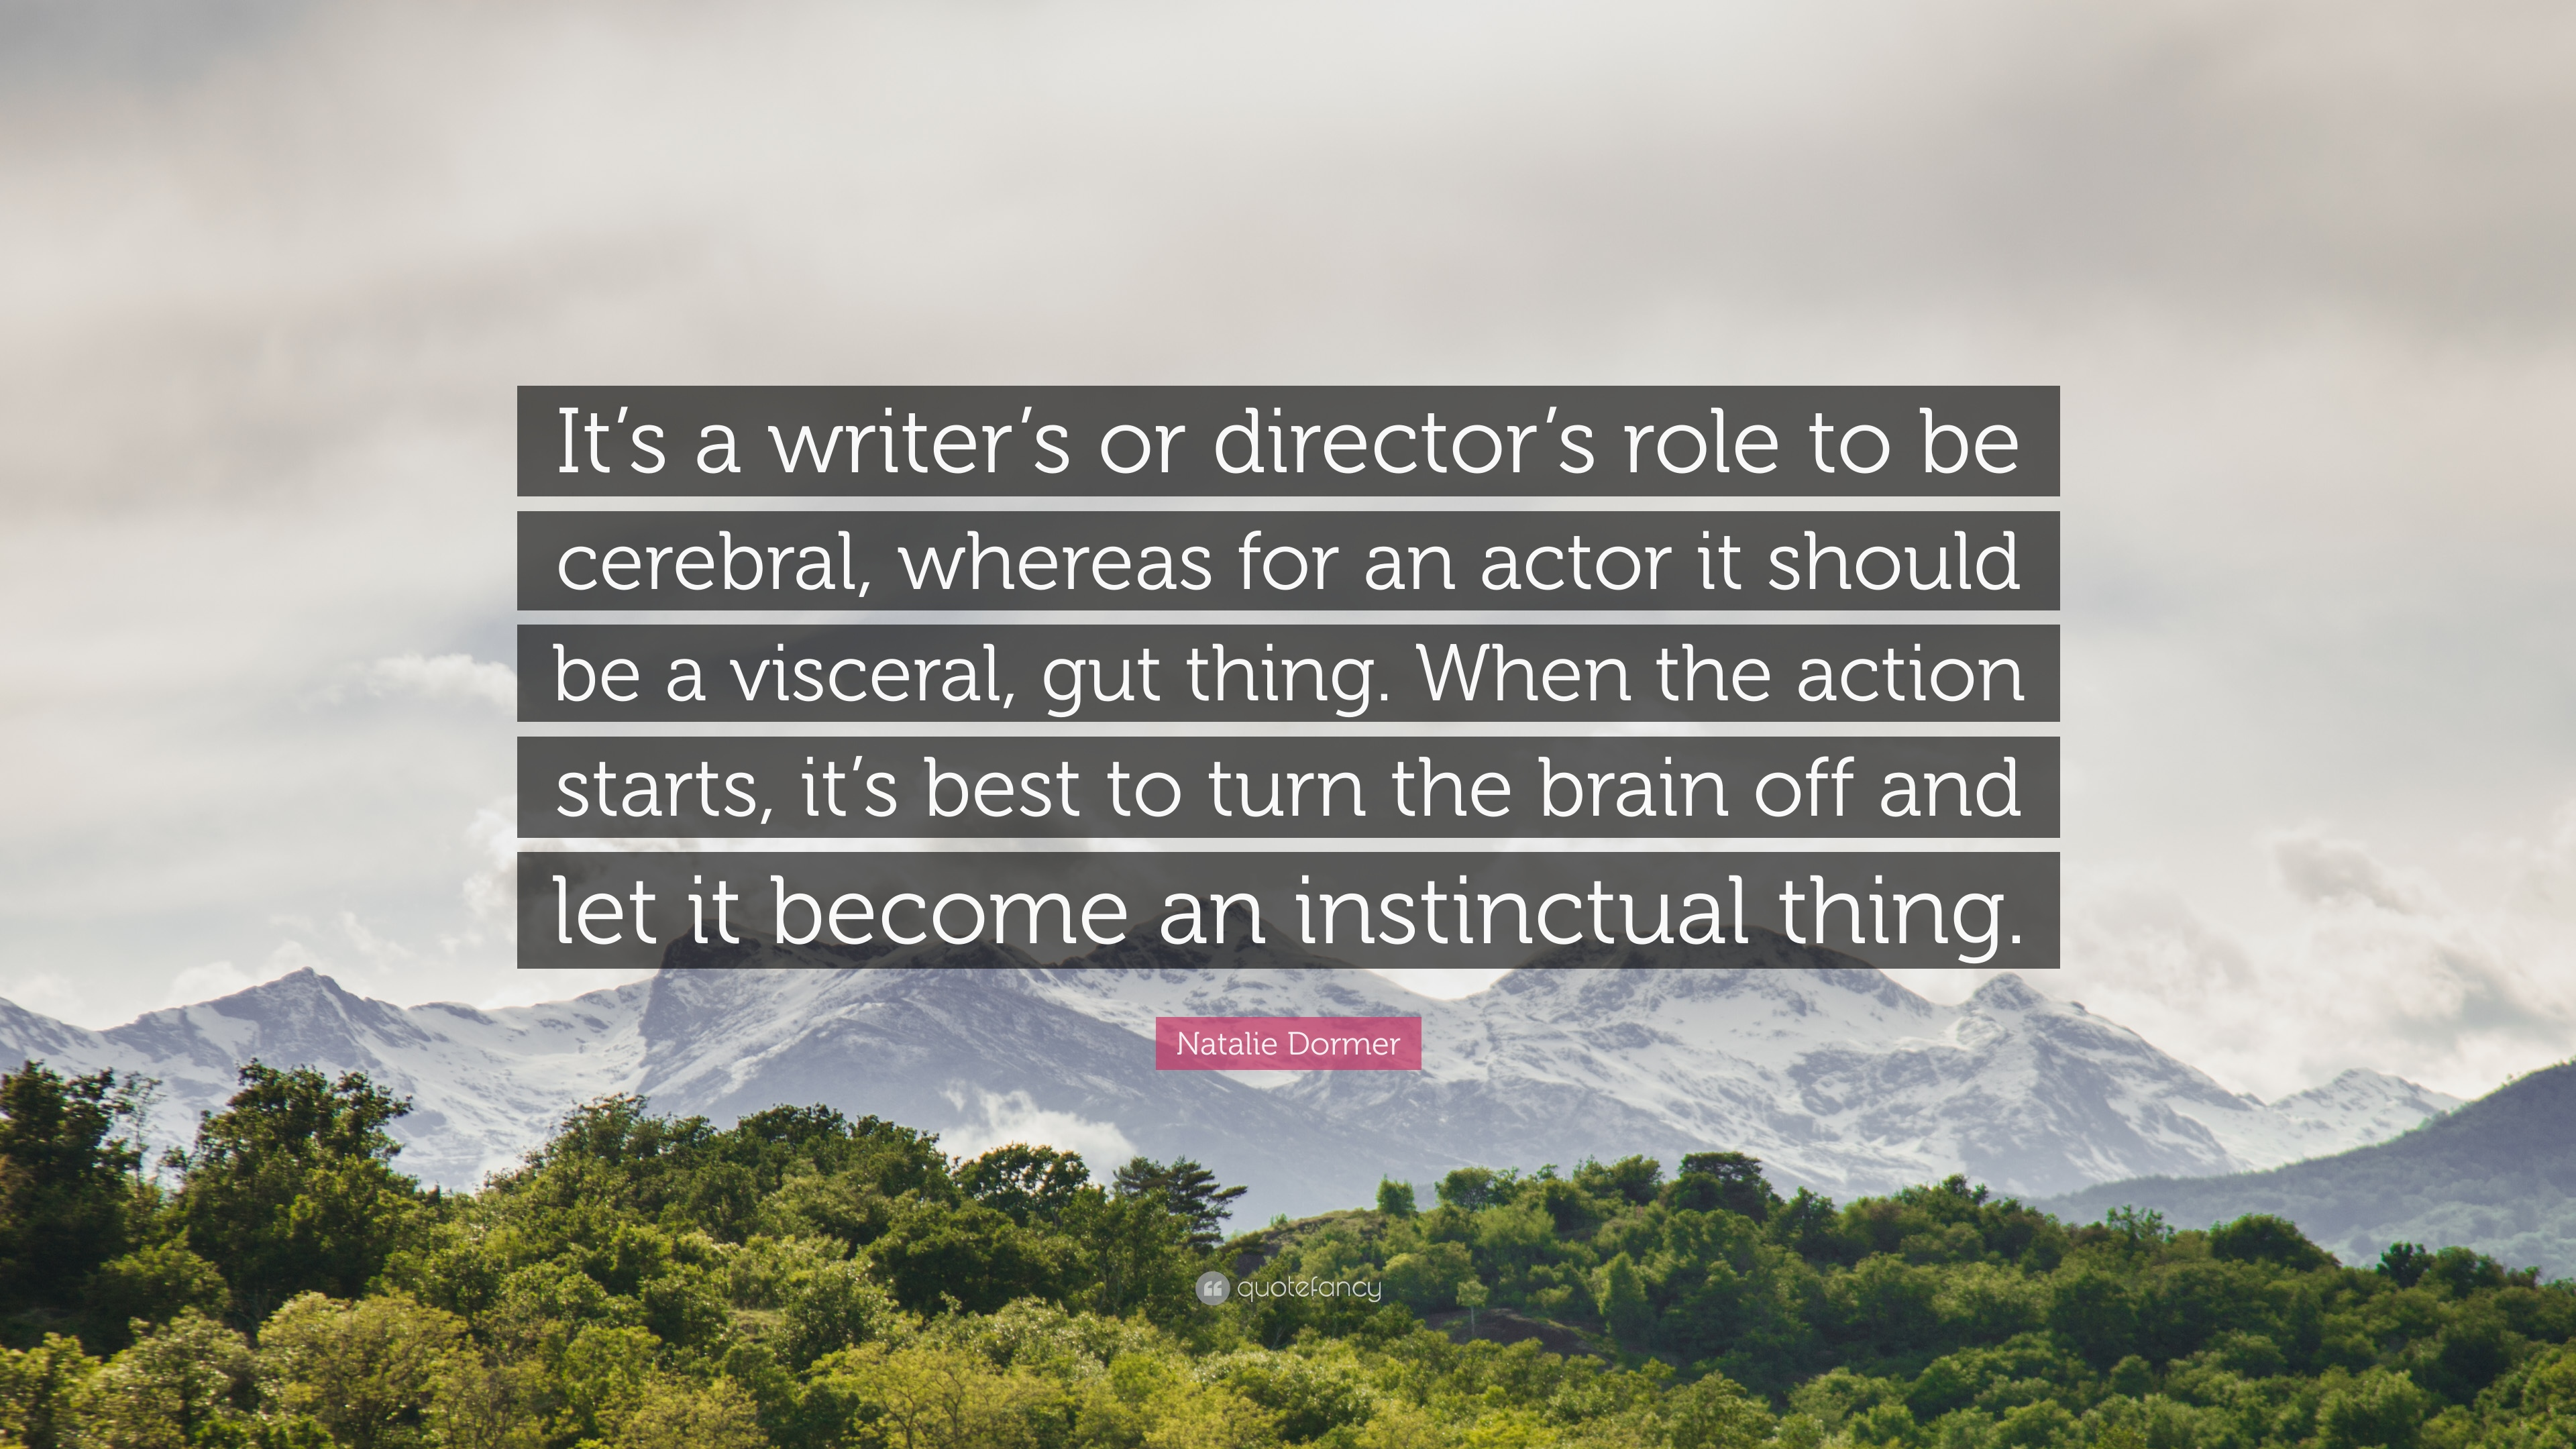 How can someone be an instinctual writer?